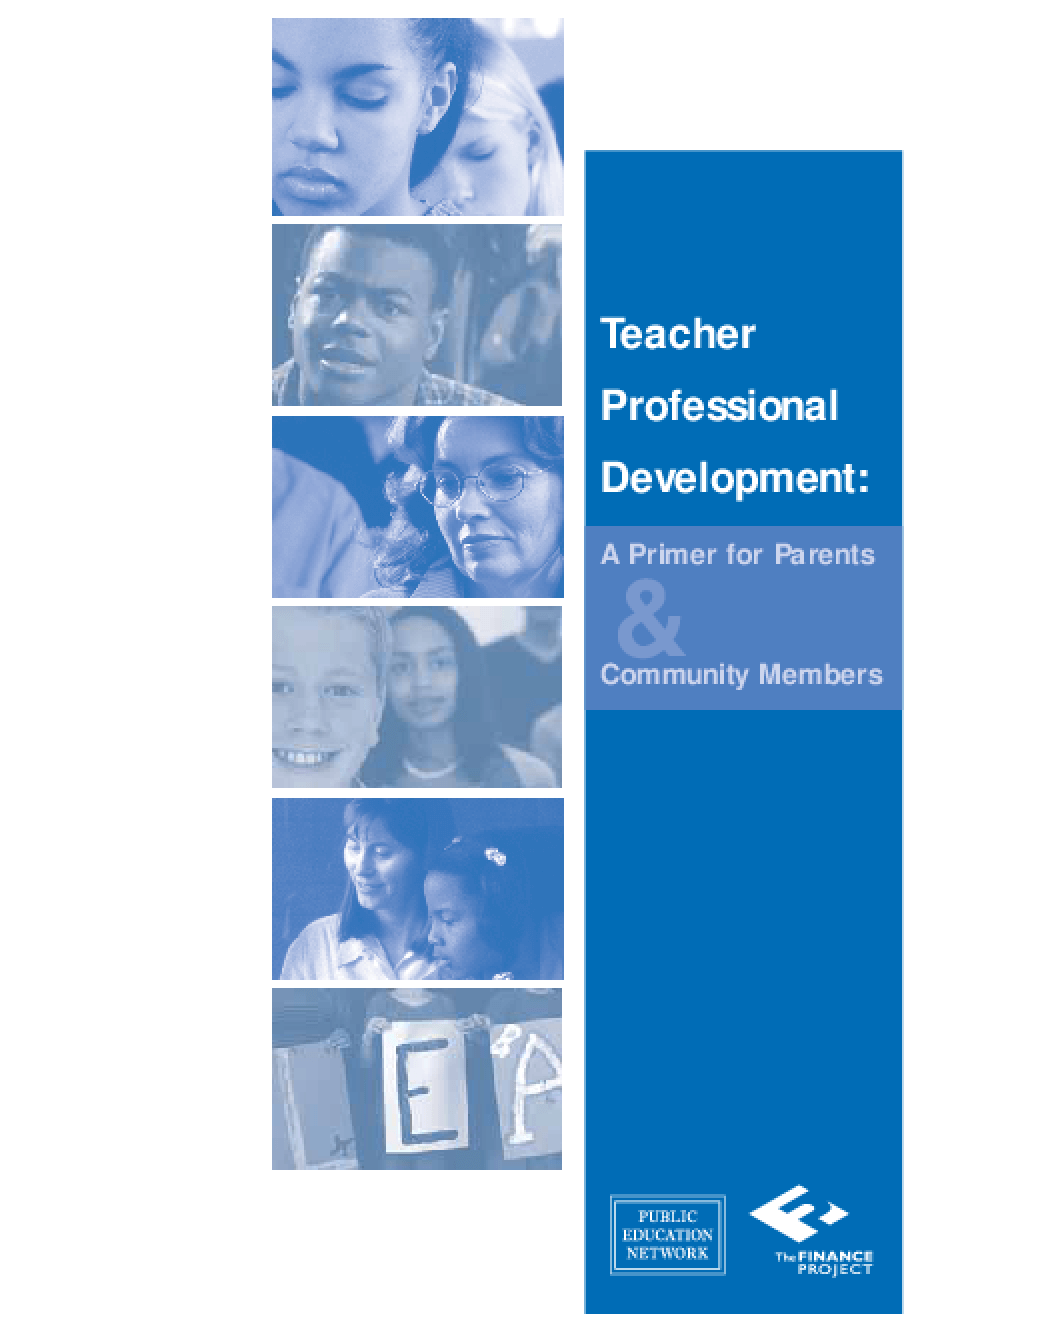 Teacher Professional Development: A Primer for Parents and Community Members